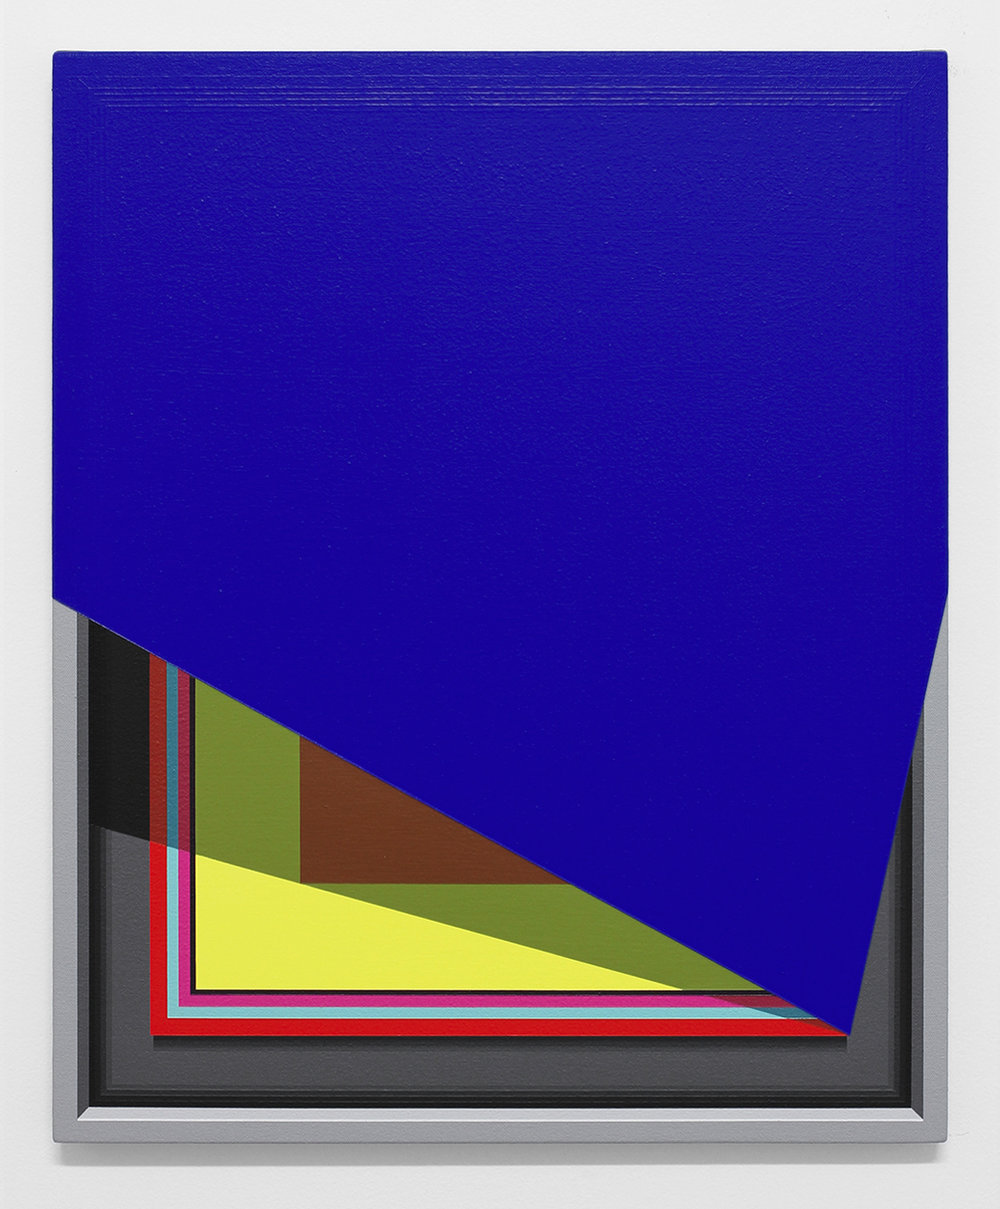 Severed Hue (Cobalt Blue)   2013  Acrylic on canvas  22 x 18 inches  (55.88 x 45.72 cm)